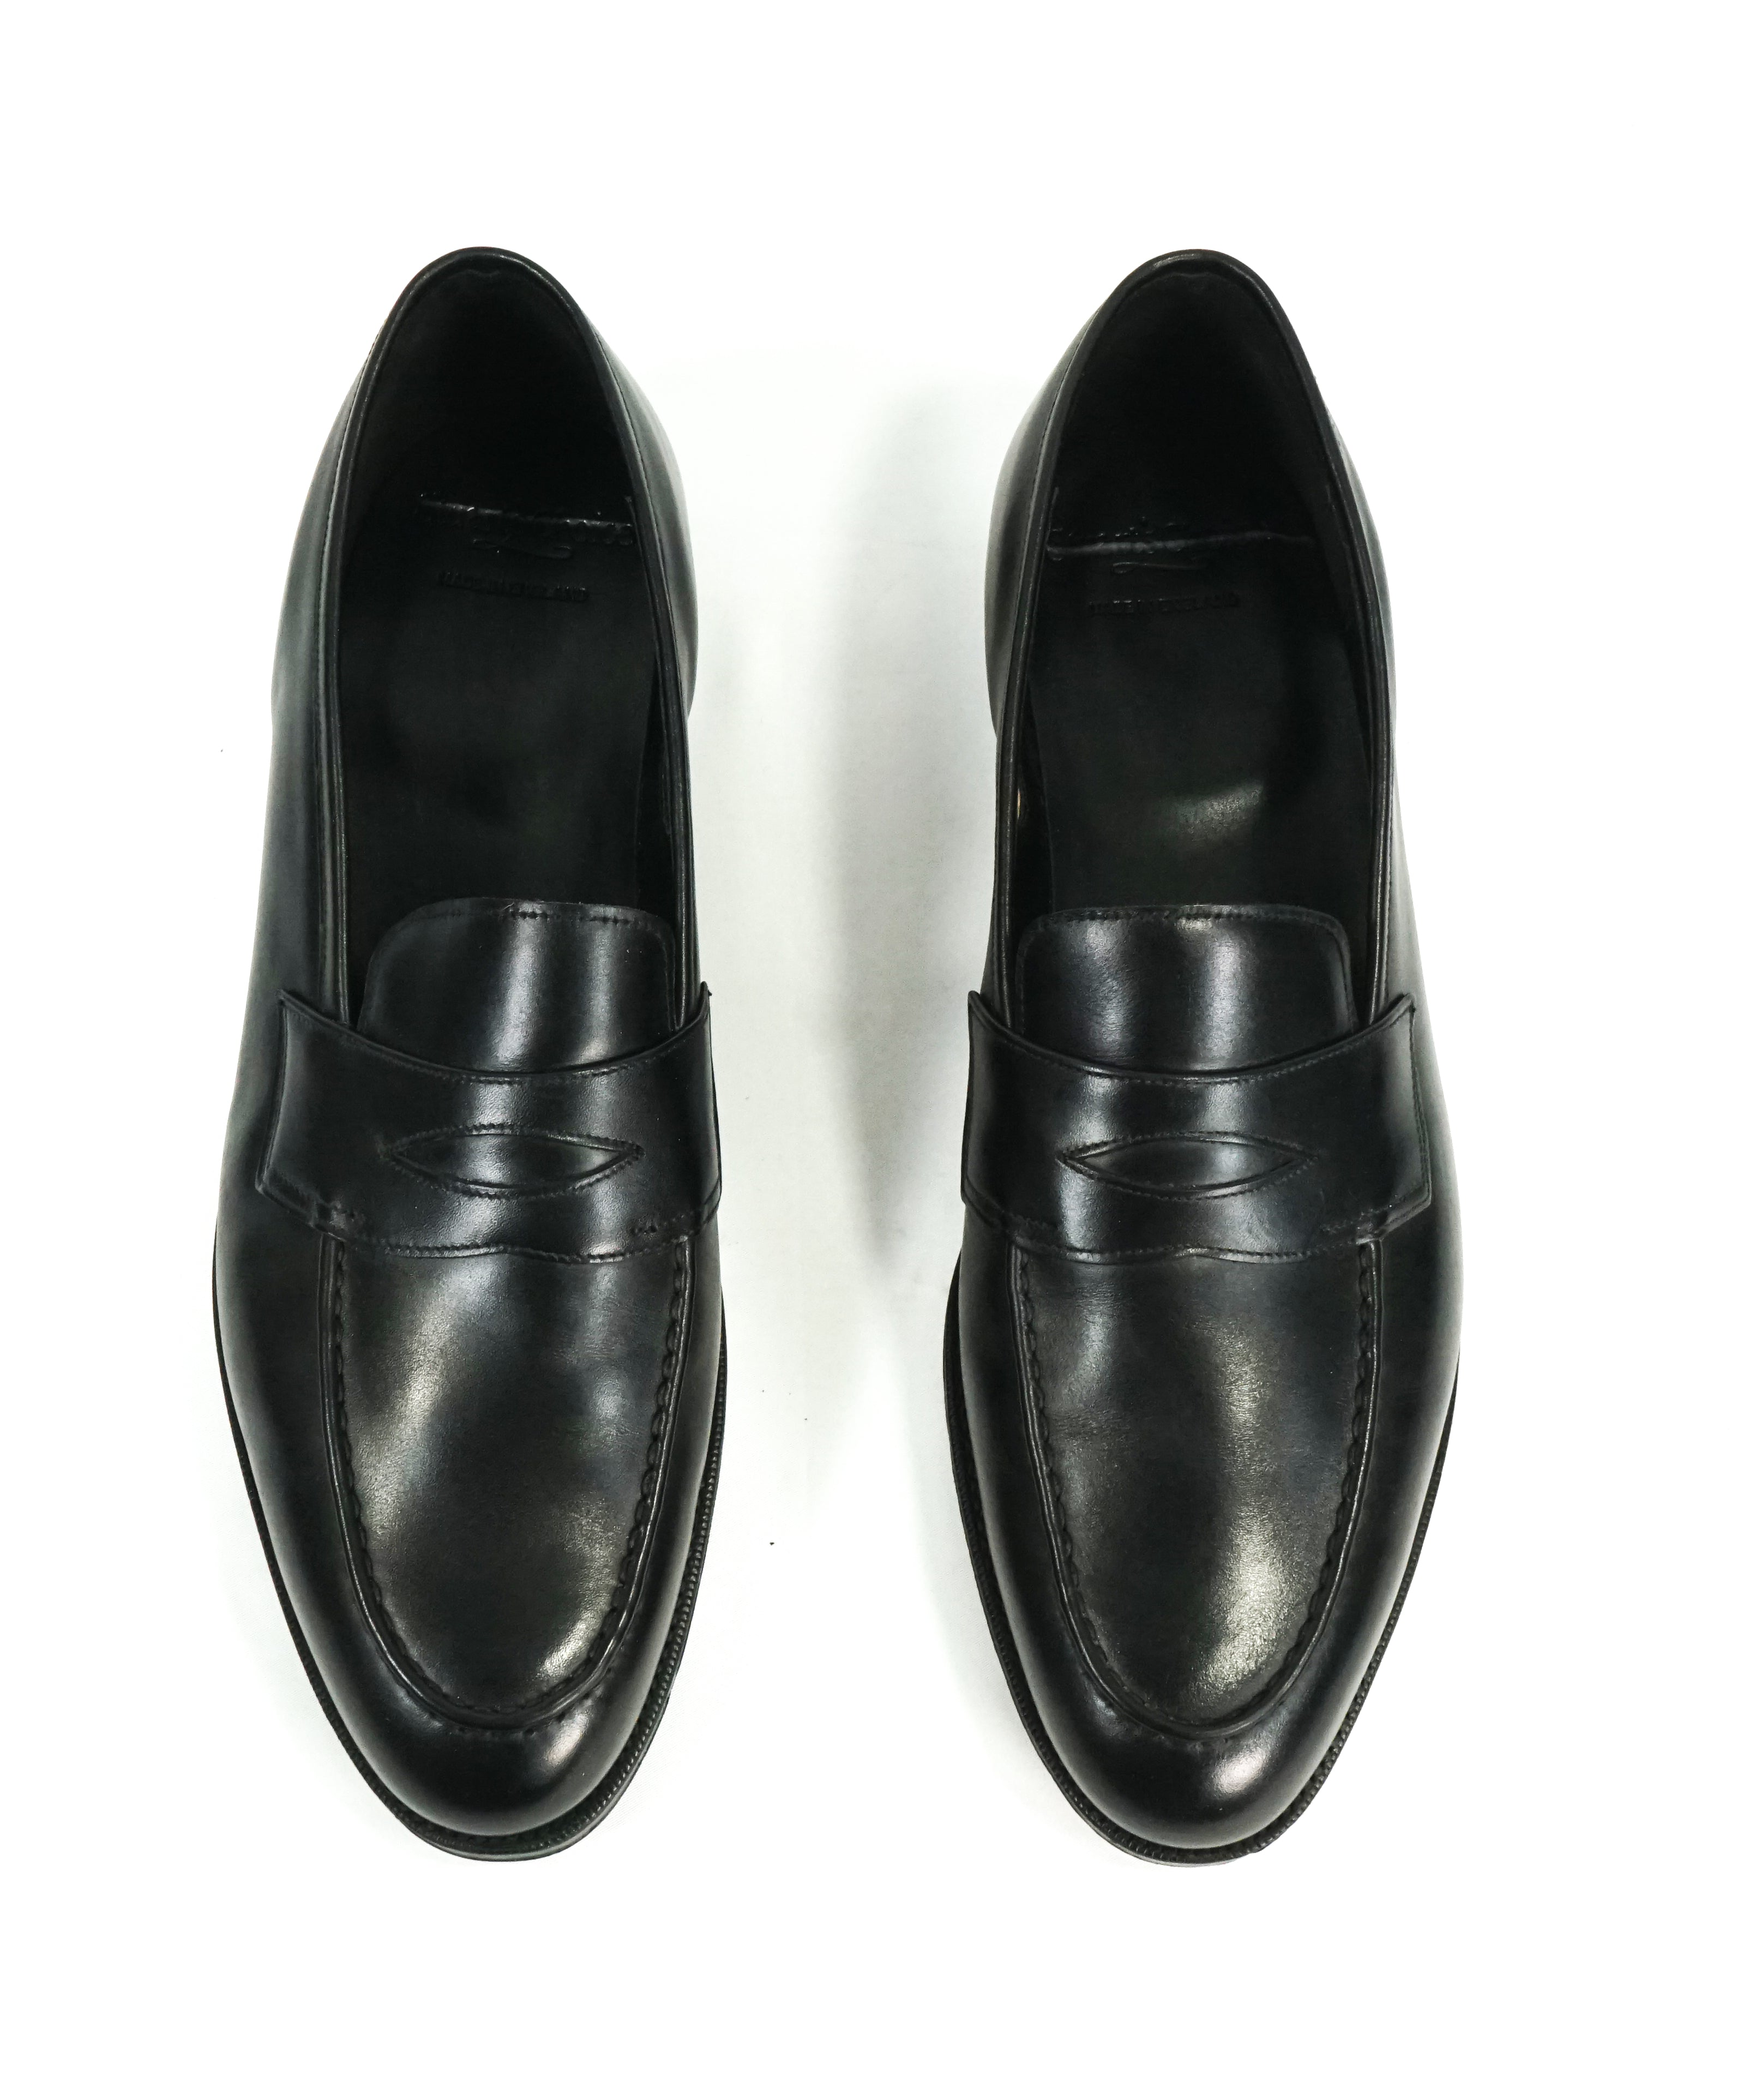 "PAUL STUART by EDWARD GREEN - ""Piccadilly"" Leather Loafers UK Made - 12"